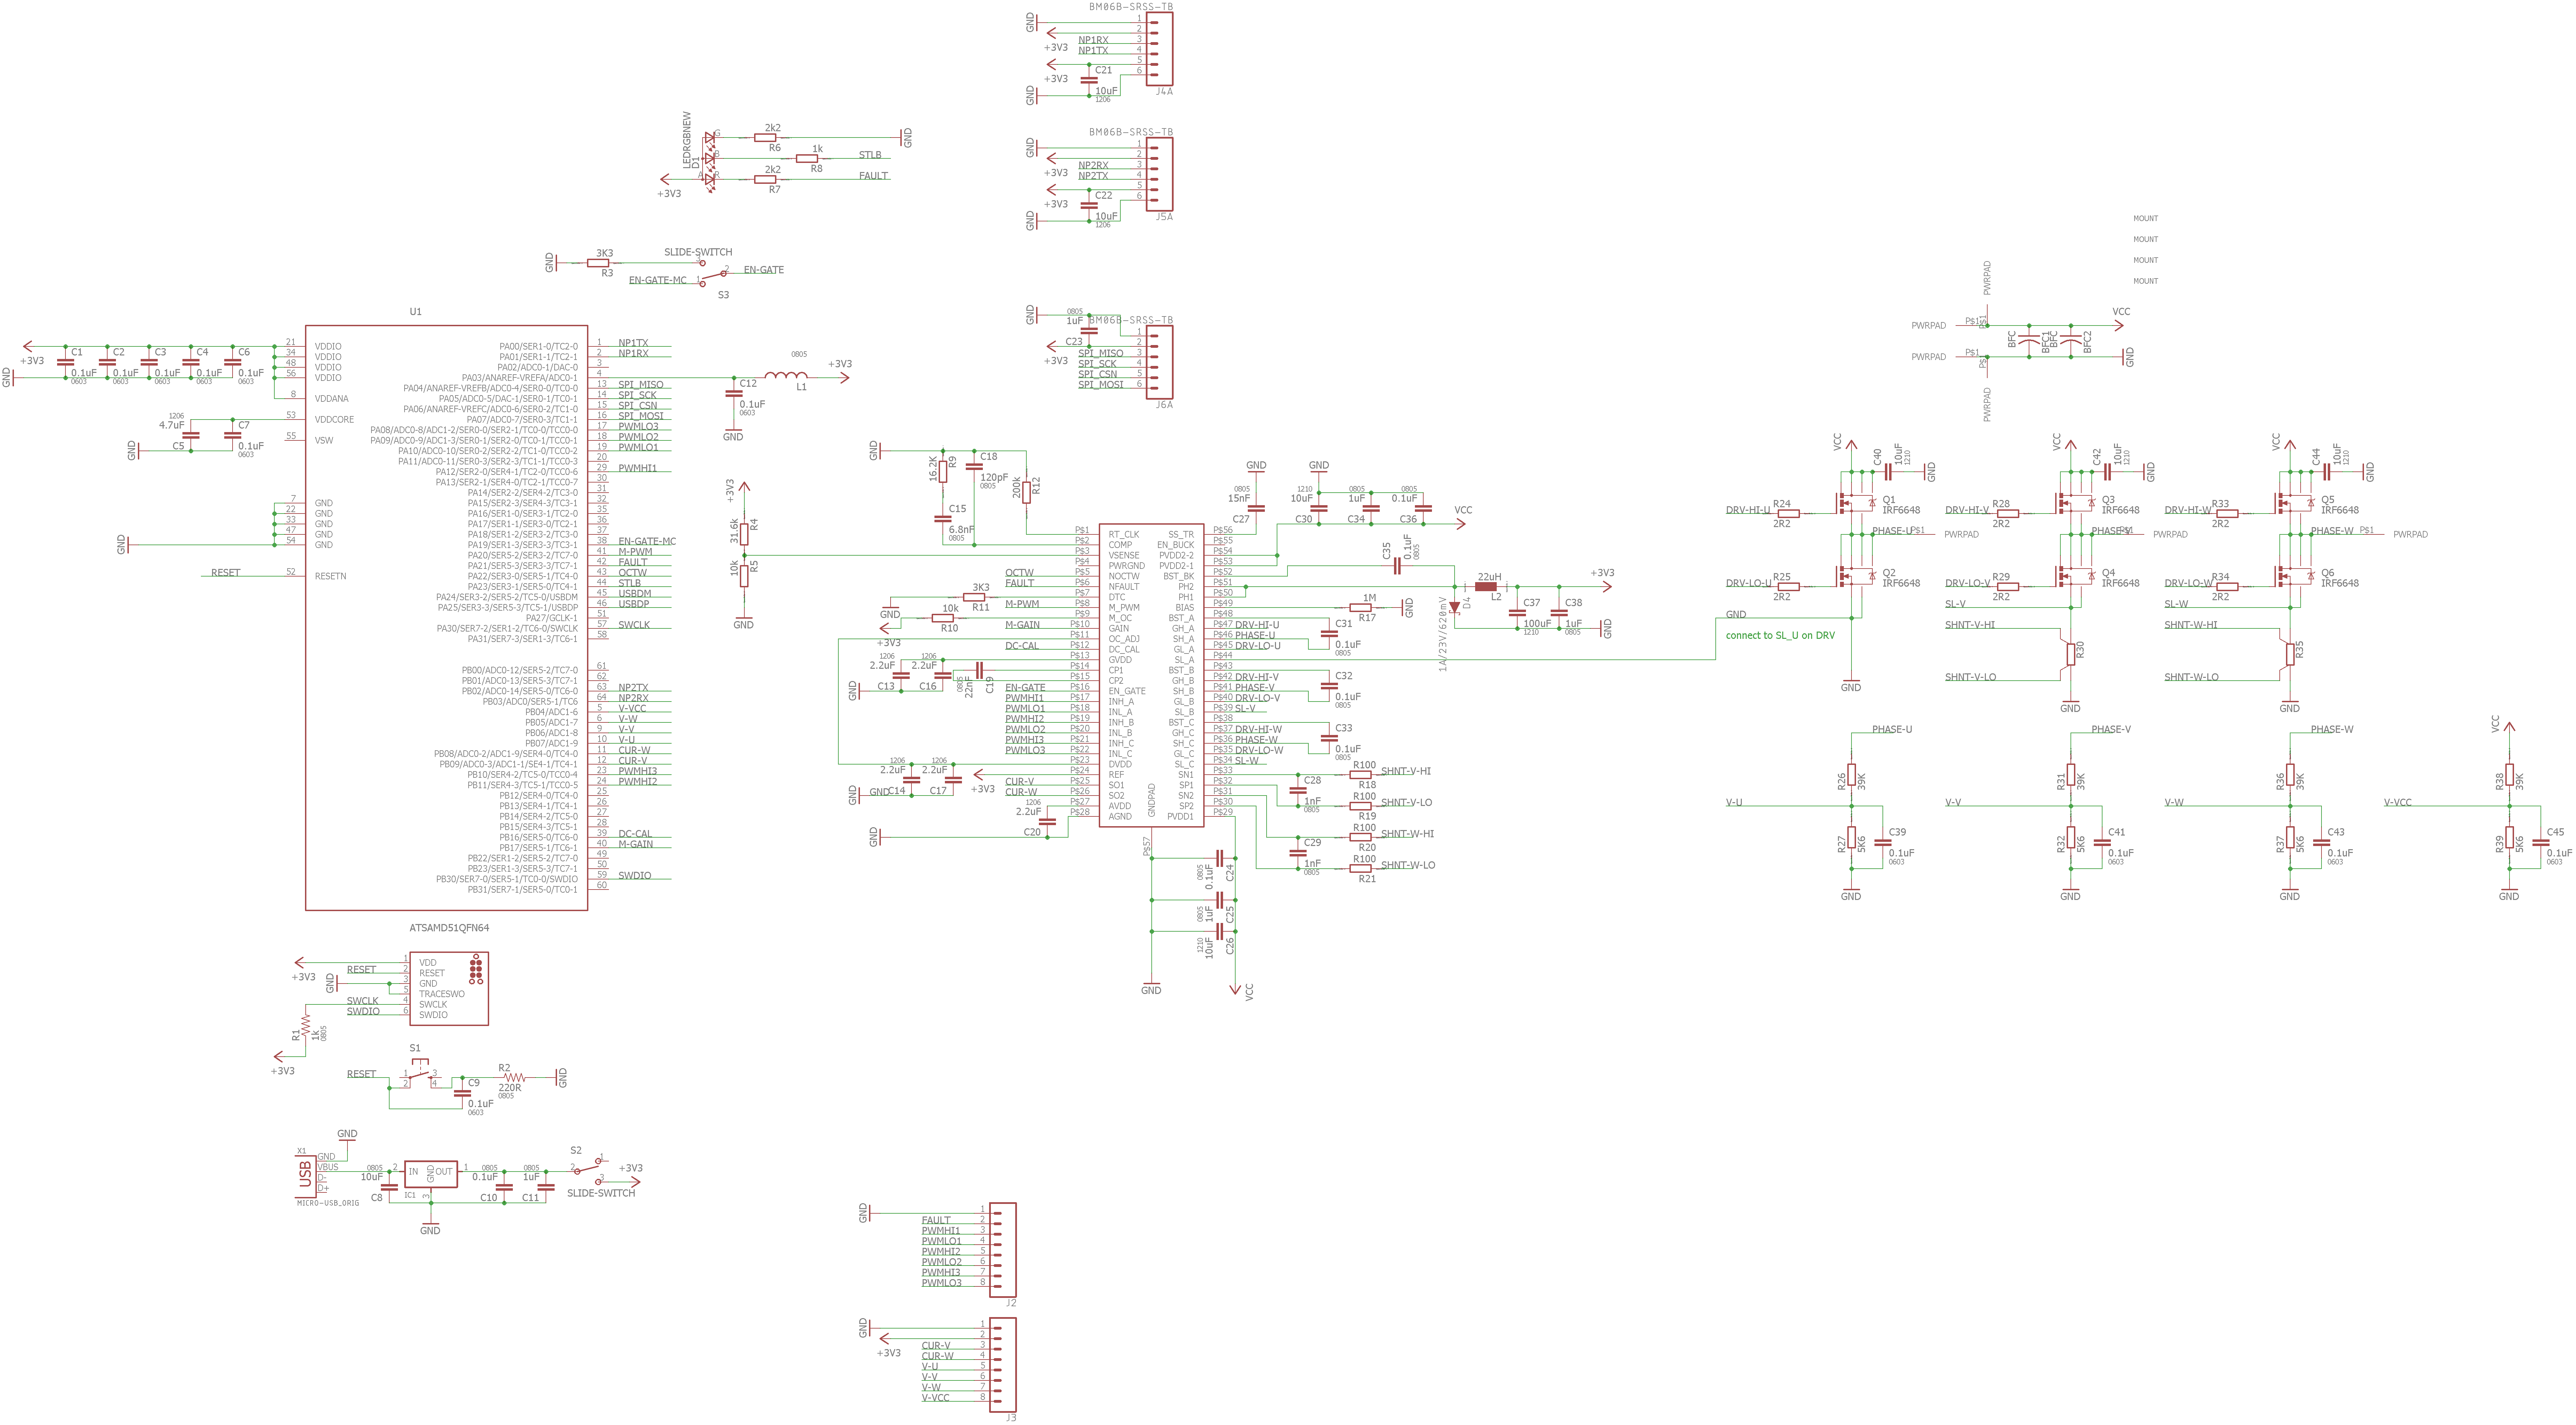 images/brushless-motor-schematic.png